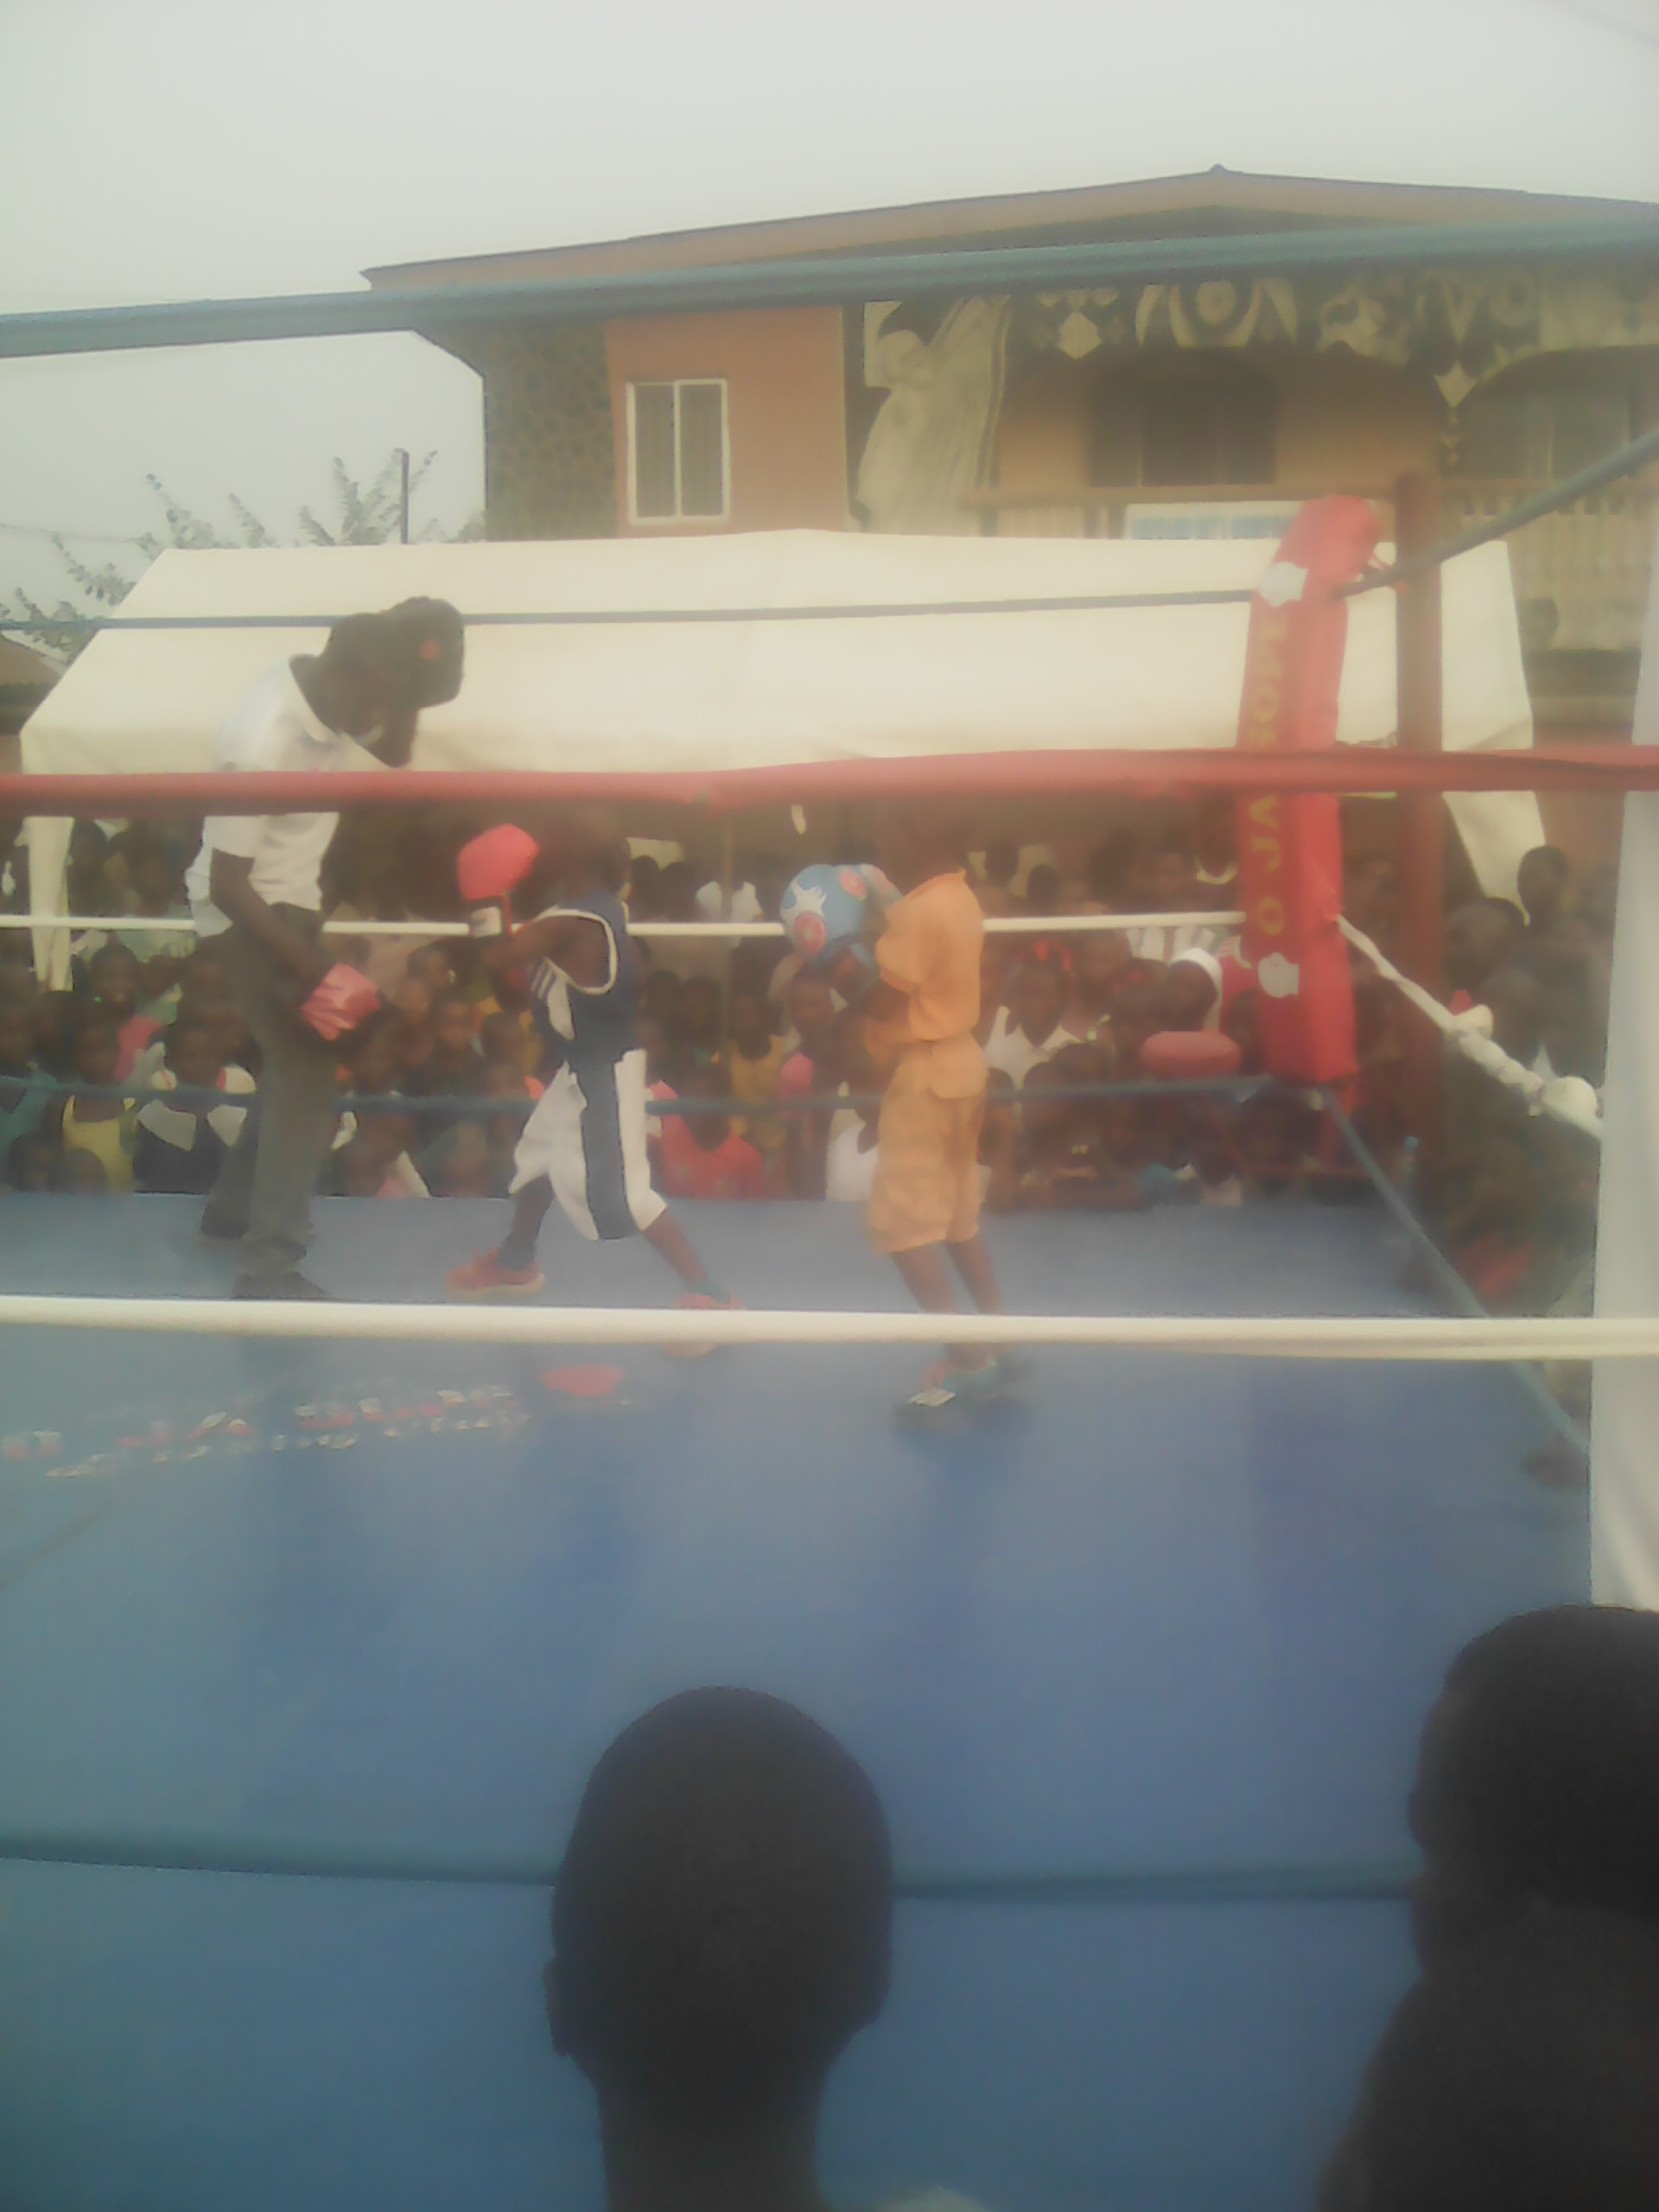 West African Boxing Champion, Waliu Arogundade Plays Host To Young Boxing Talents On Valentine's Day At Ota